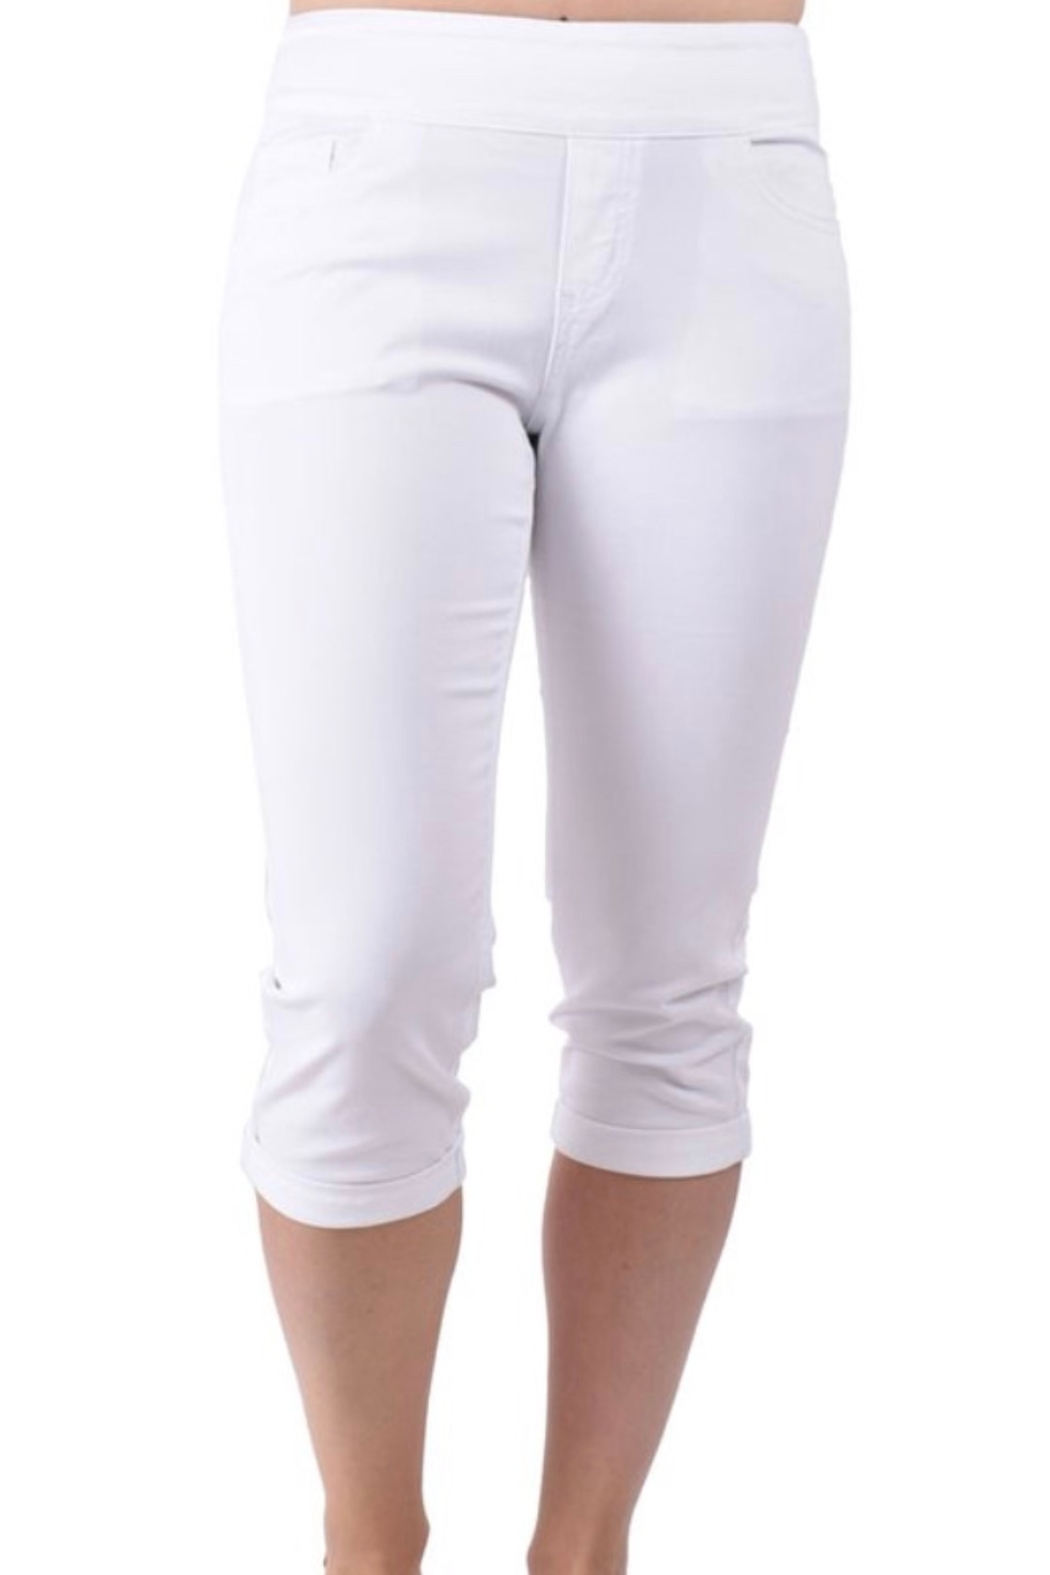 Ethyl Chattanooga Pull on white capris pant with roll up hem. - Main Image